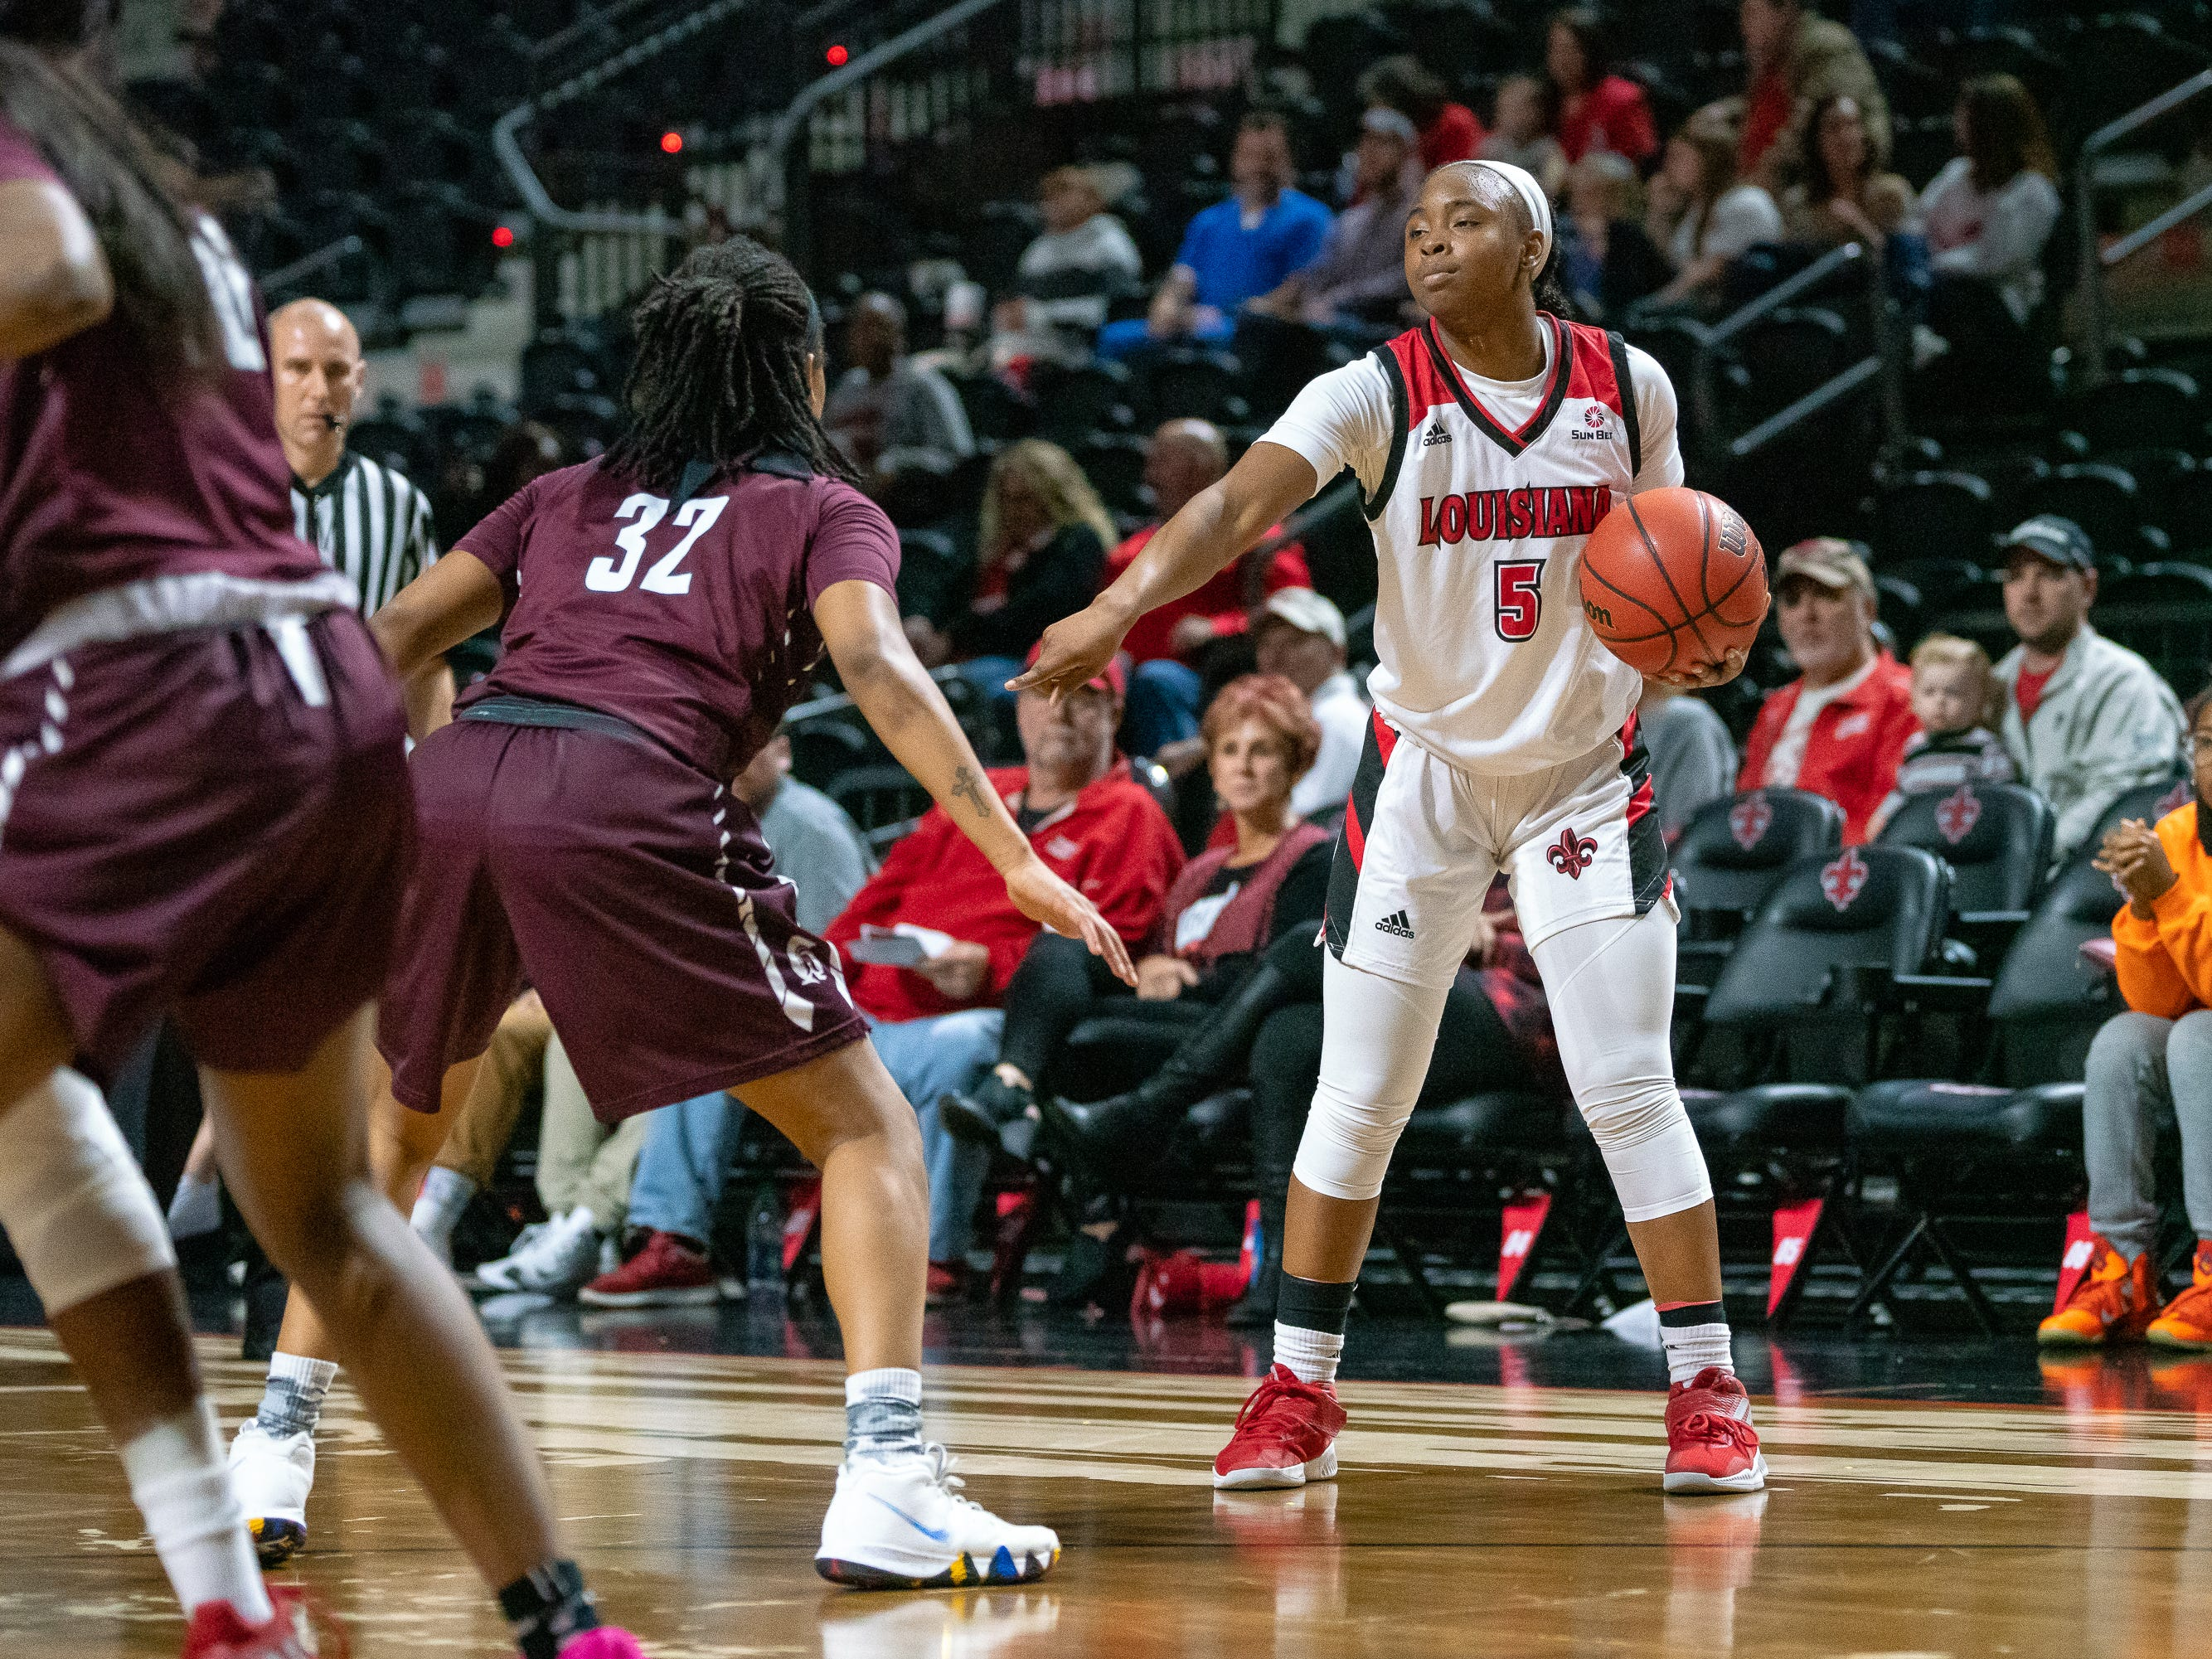 UL's Jomyra Mathis directs her teammates on the court as the Ragin' Cajuns take on the Little Rock Trojans at the Cajundome on Thursday, March 7, 2019.